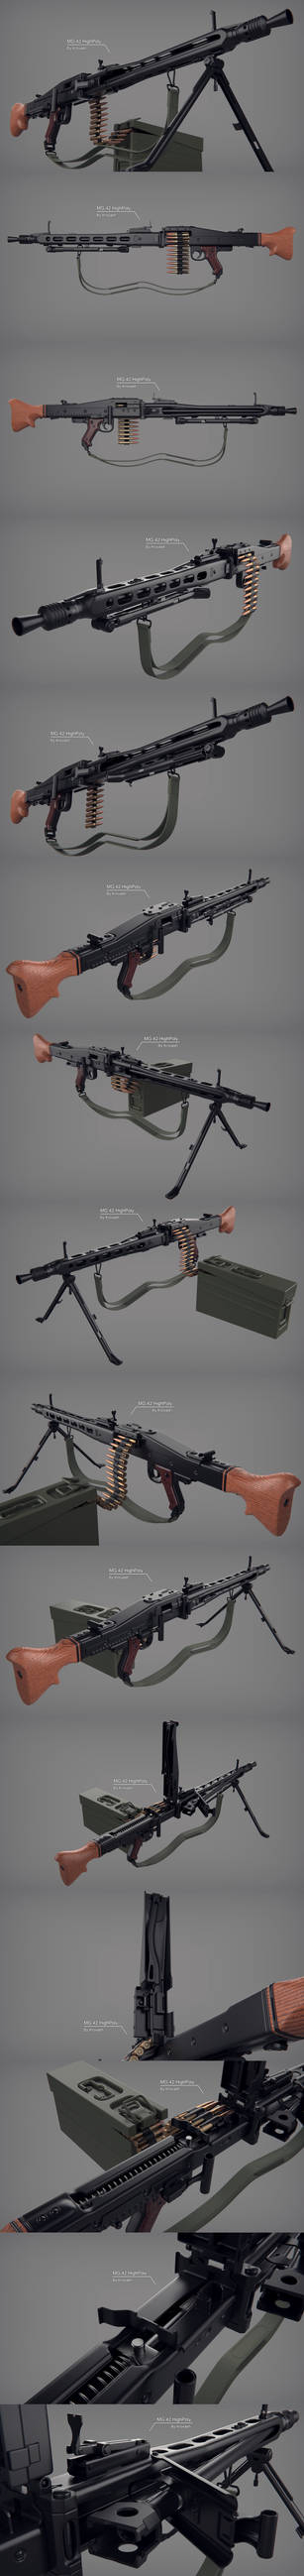 MG 42 HighPoly Render